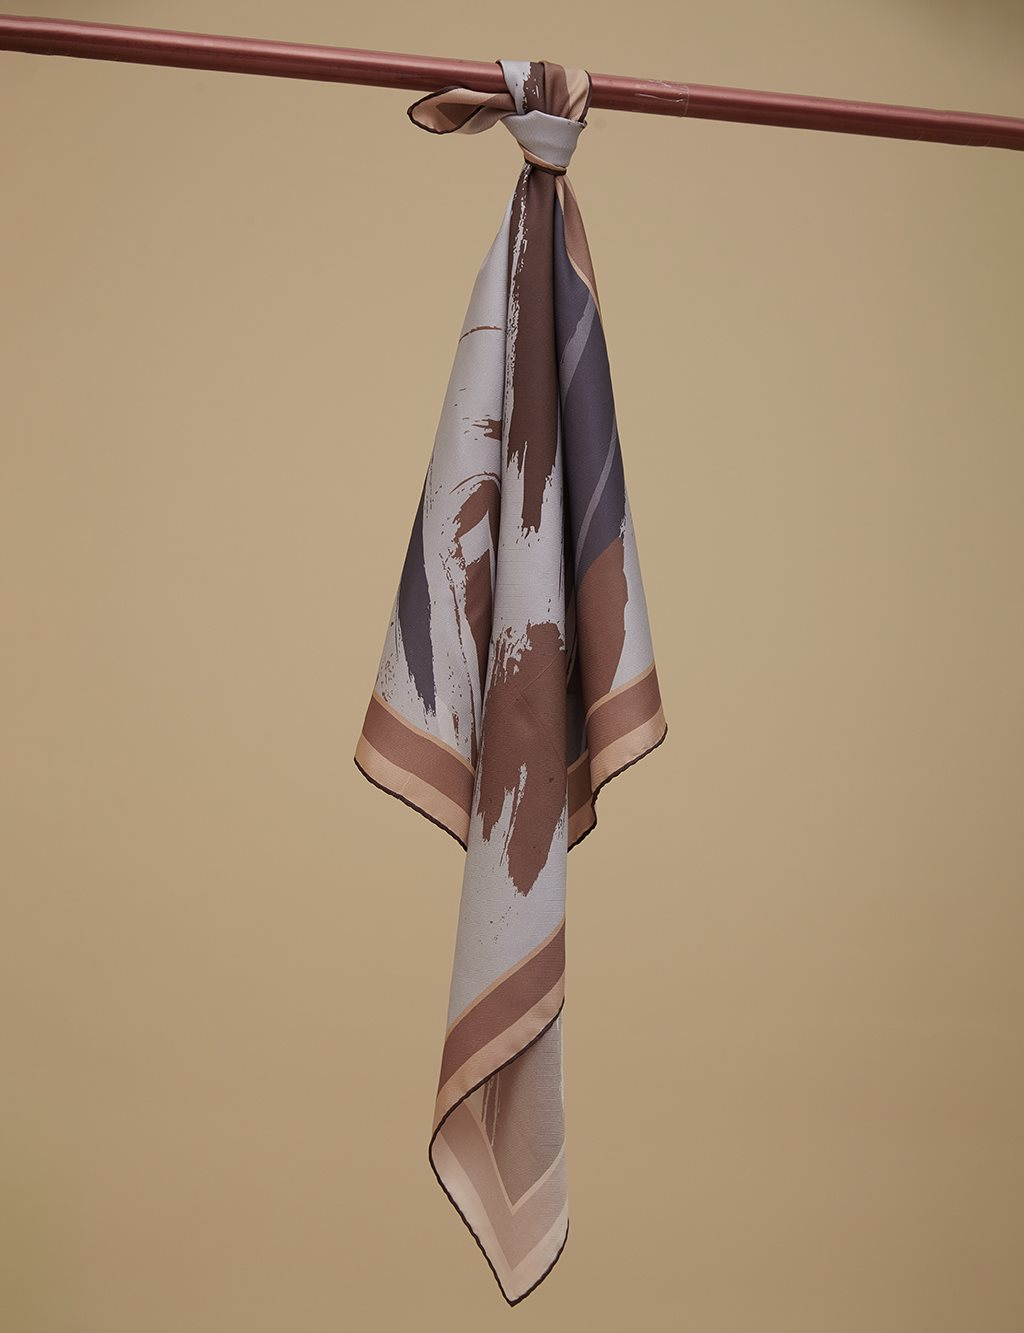 Intangible Patterned Twill Silk Scarf A9 ESP03 Beige